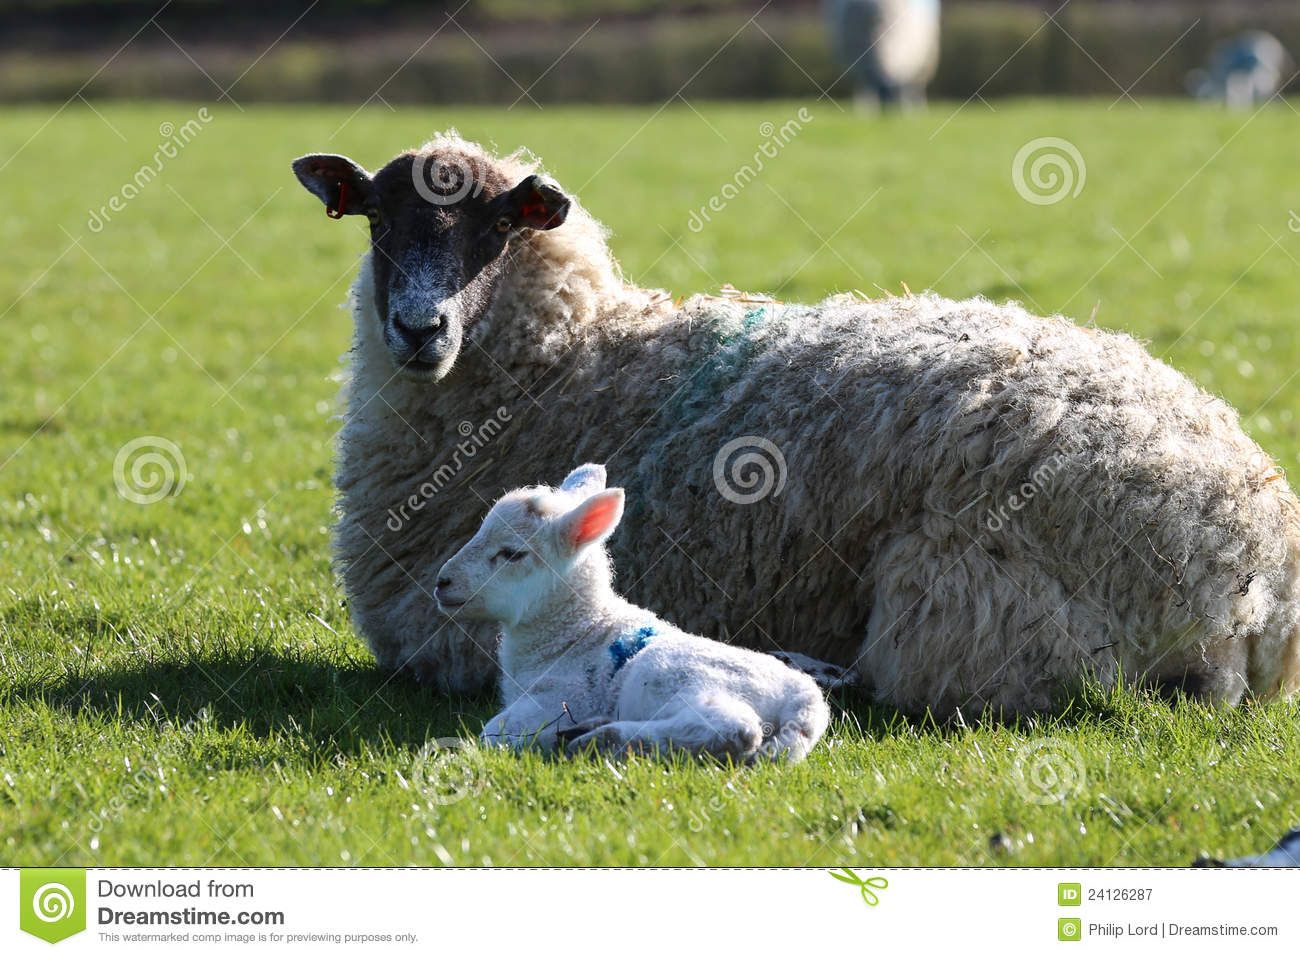 Ewe sheep with lamp stock image. Image of grass, meadow - 24126287